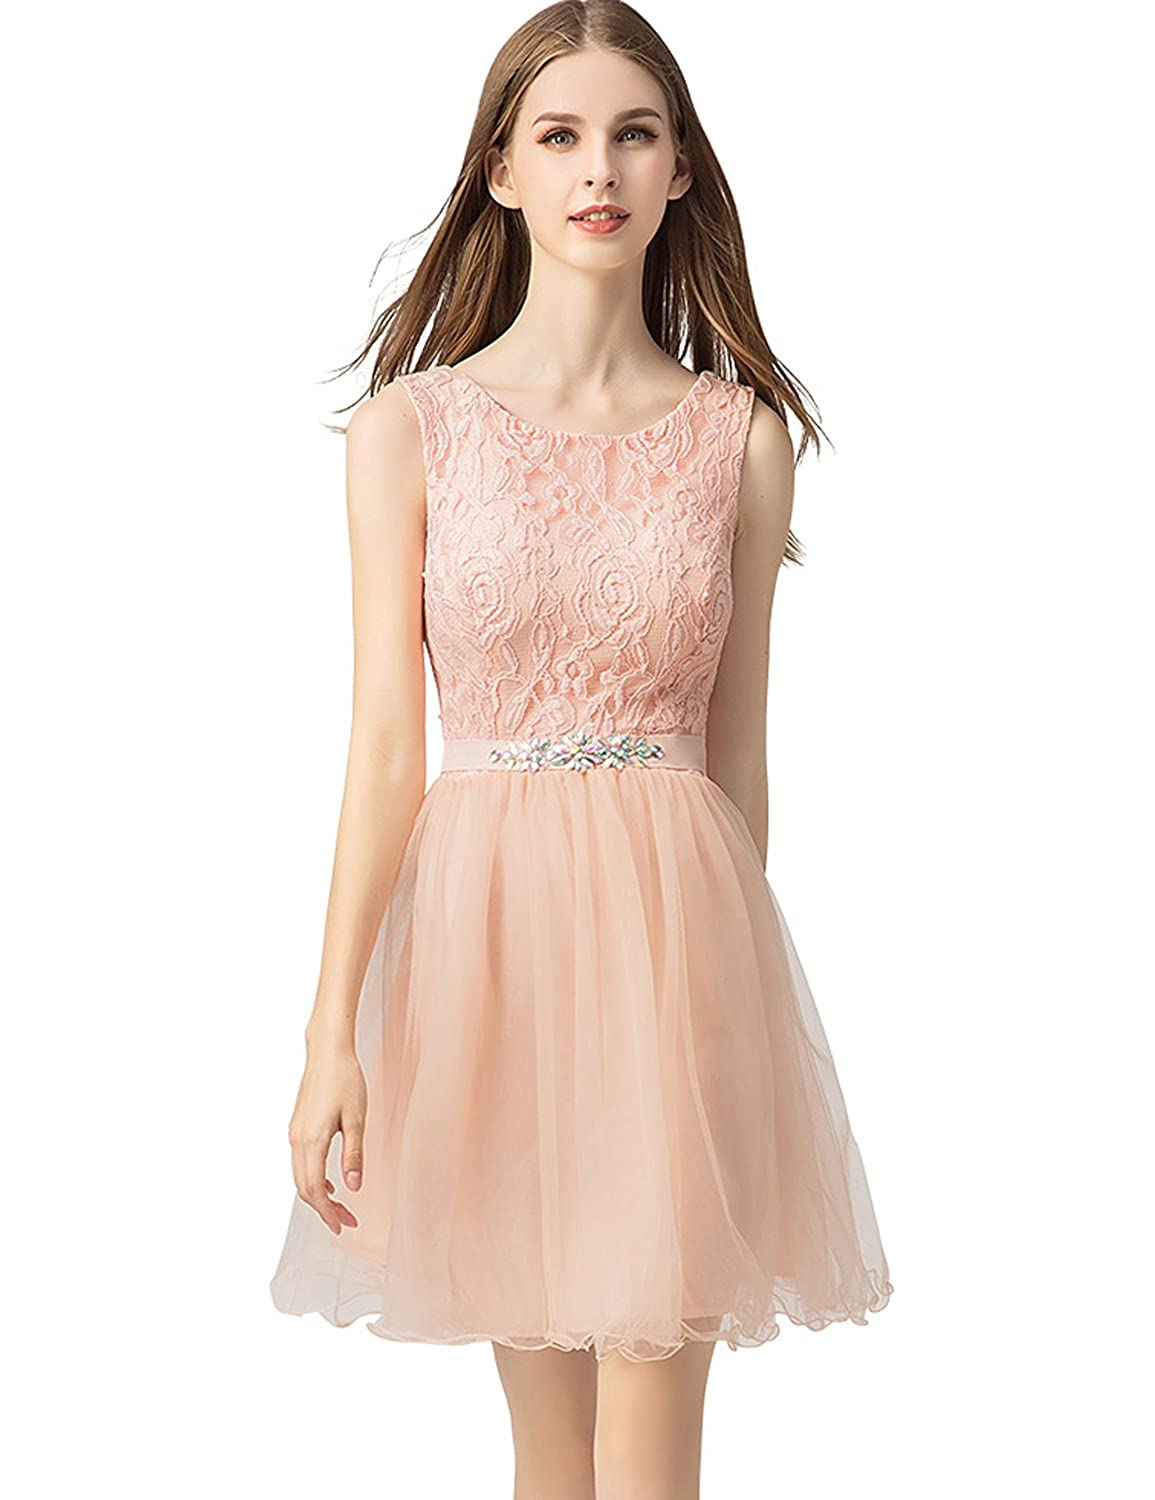 511d2a2afdc Junior Prom Dresses Short 2018 - Gomes Weine AG